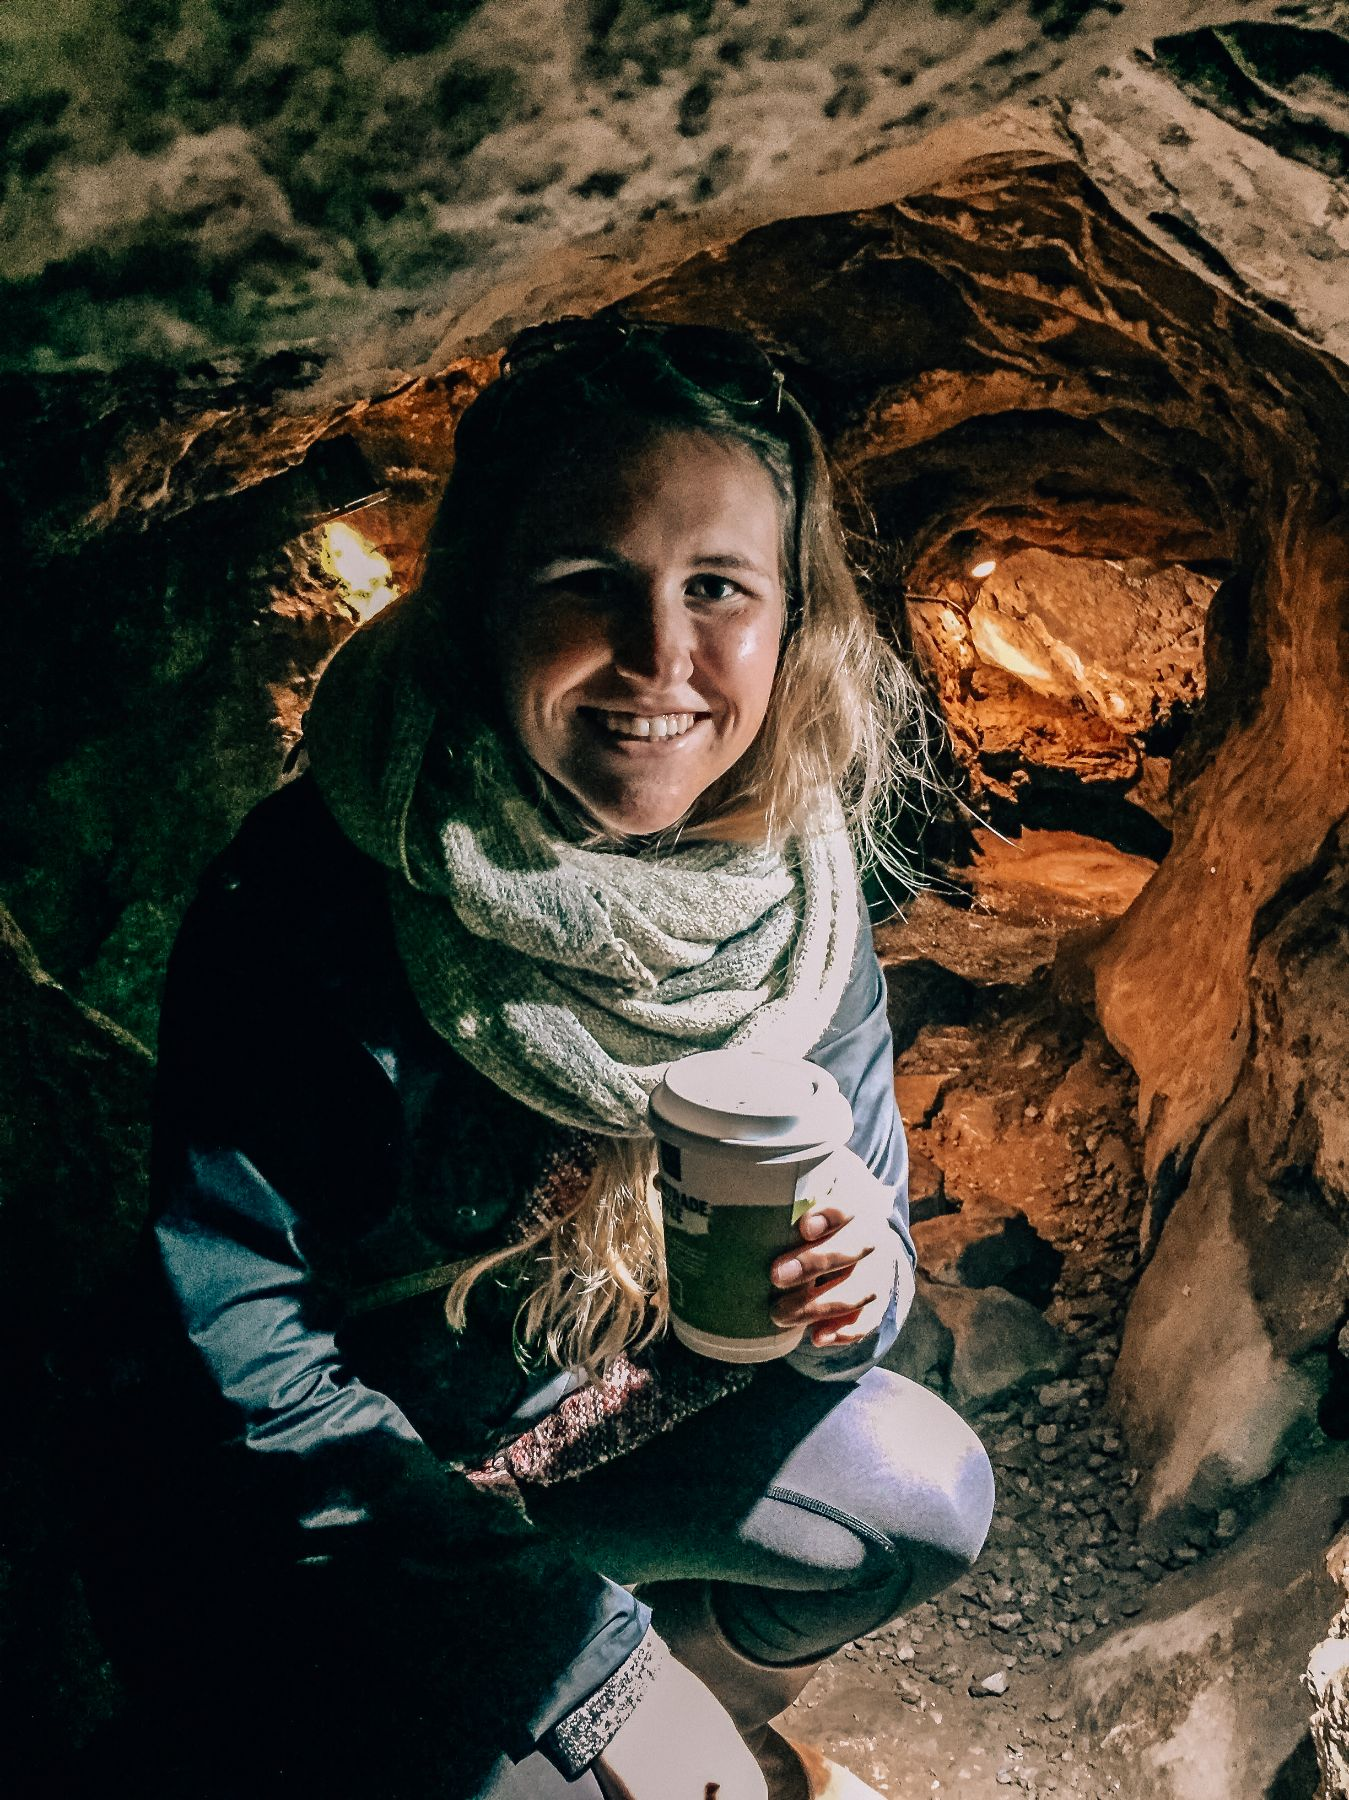 Hannah kneeling in an underground cave at Blarney castle and holding a hot chocolate